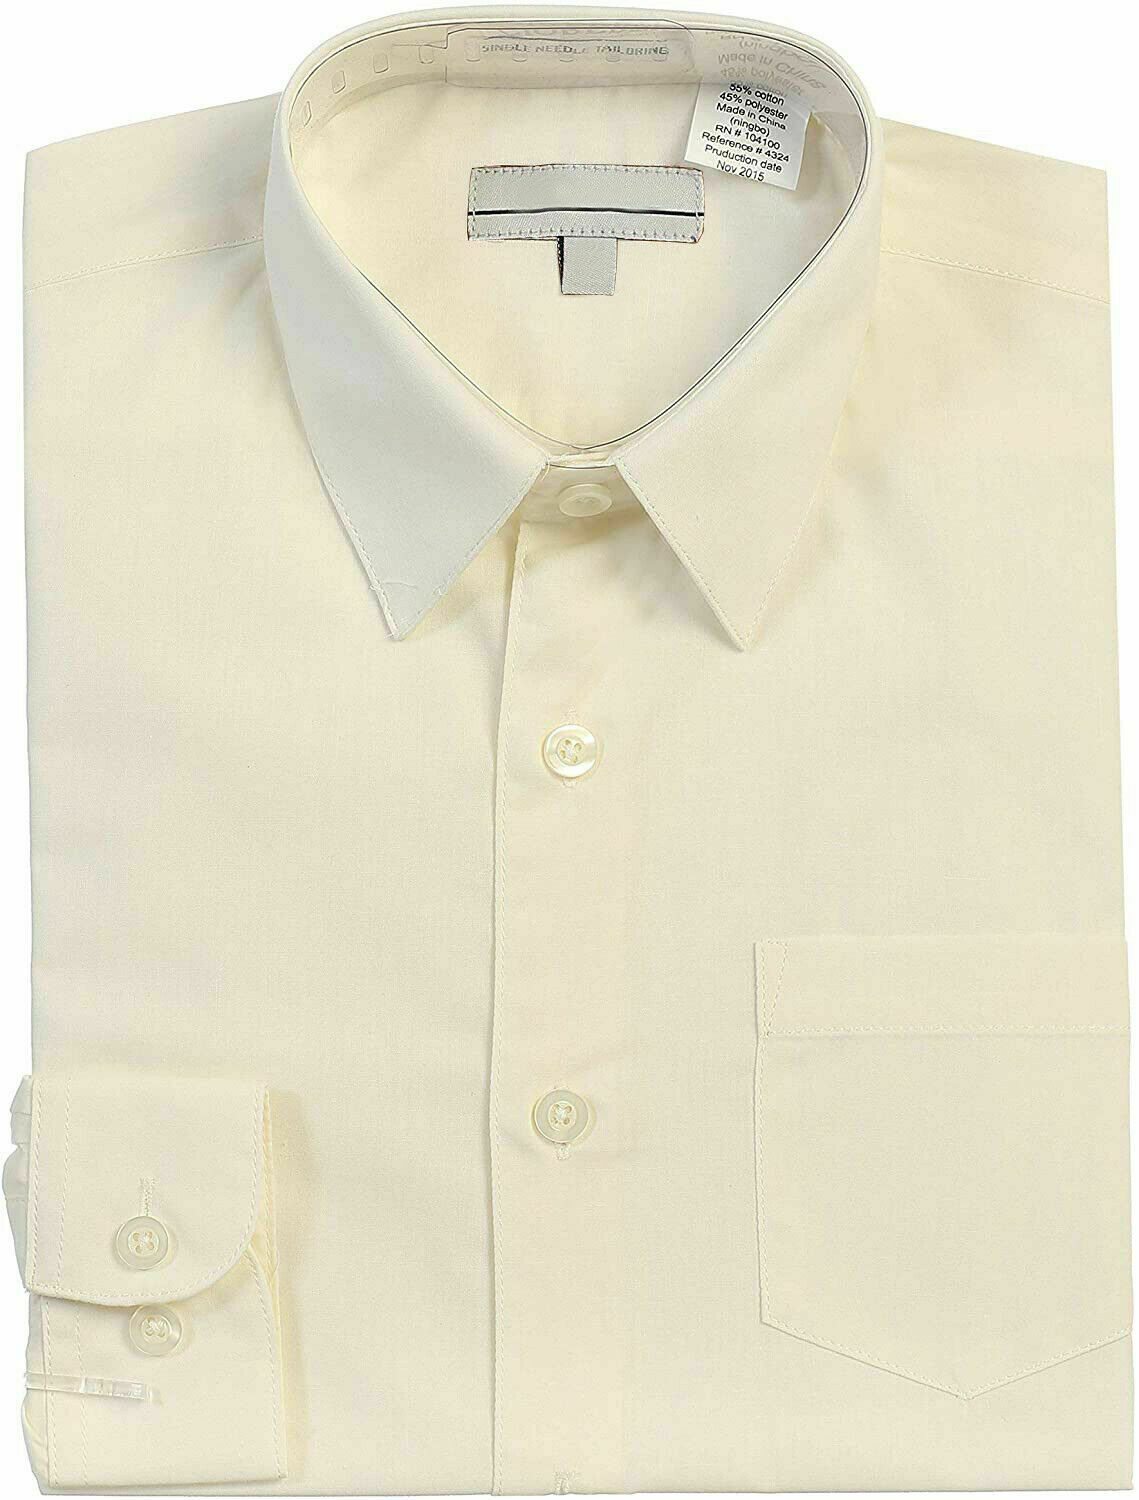 Boy's Classic Fit Long Sleeve Button Down Kids Off White Dress Shirt - Size 6